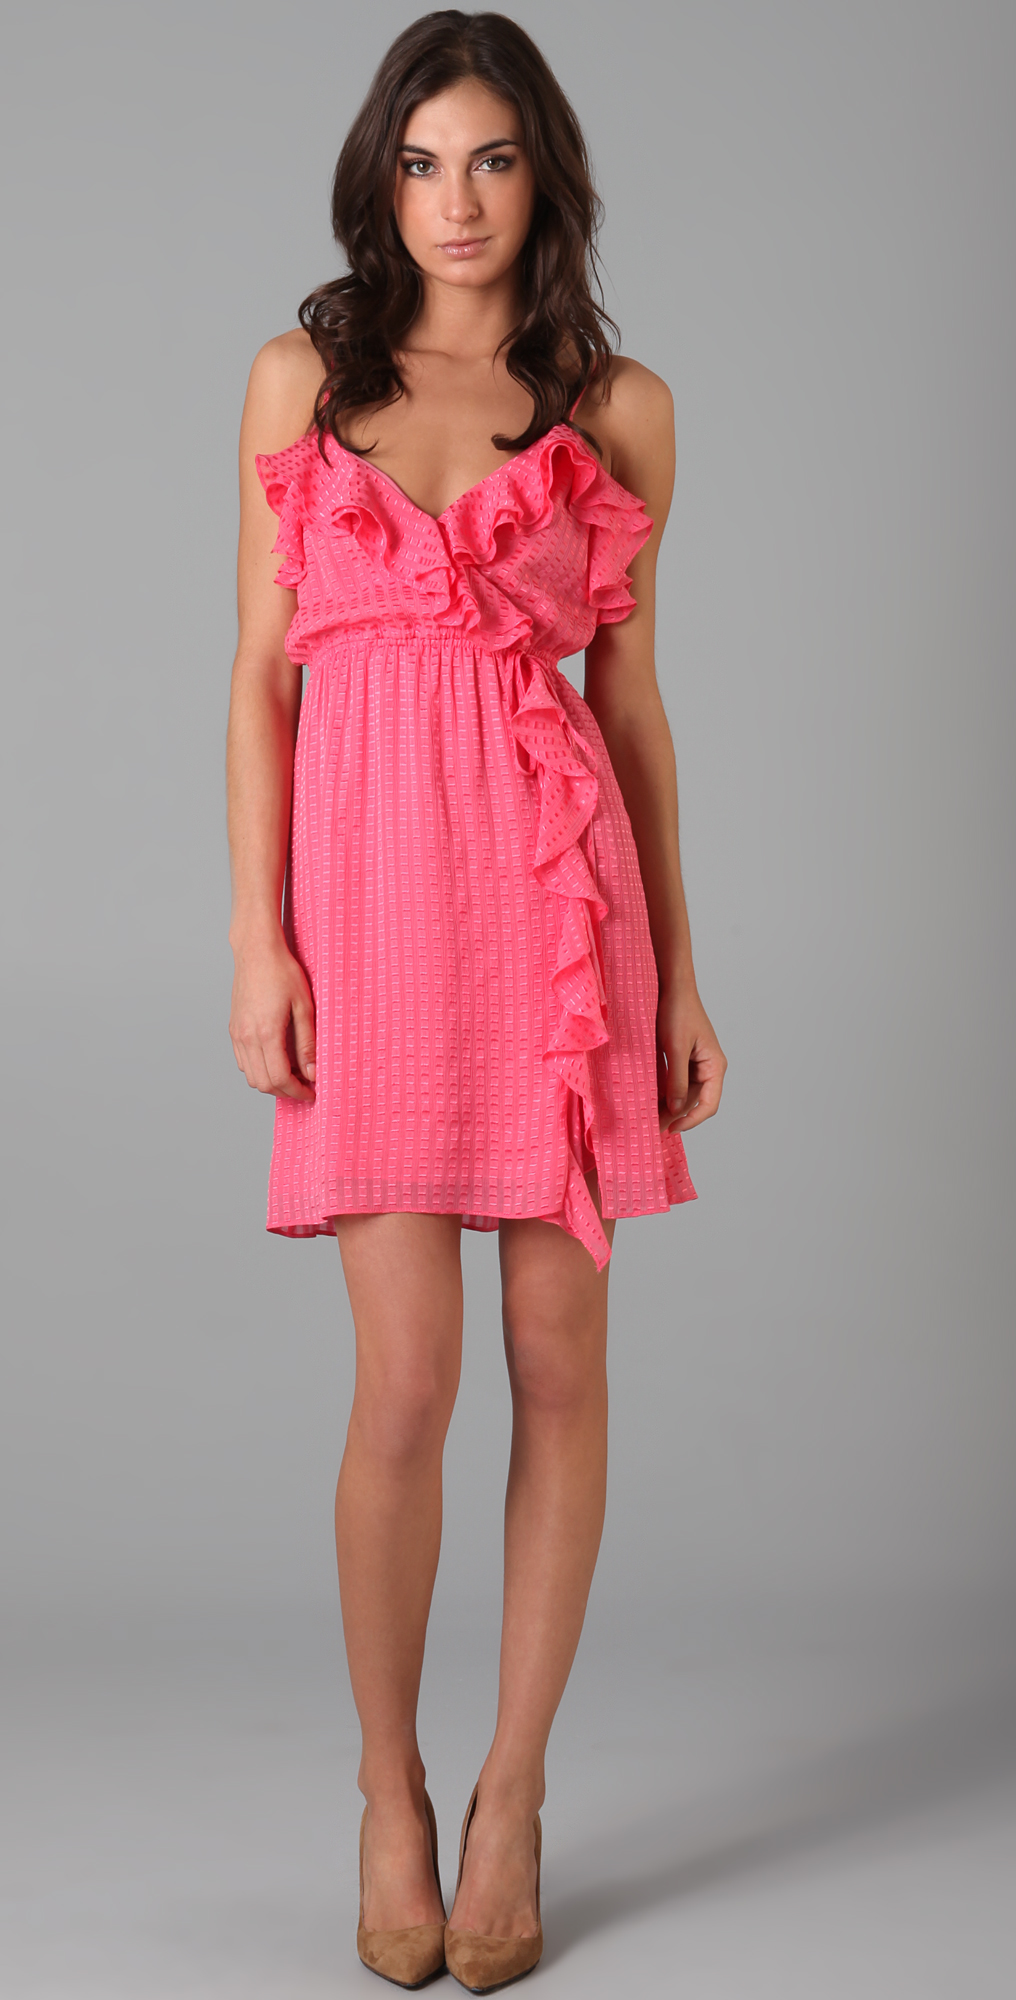 Milly Stephanie Ruffle Dress | 15% off first app purchase with ...